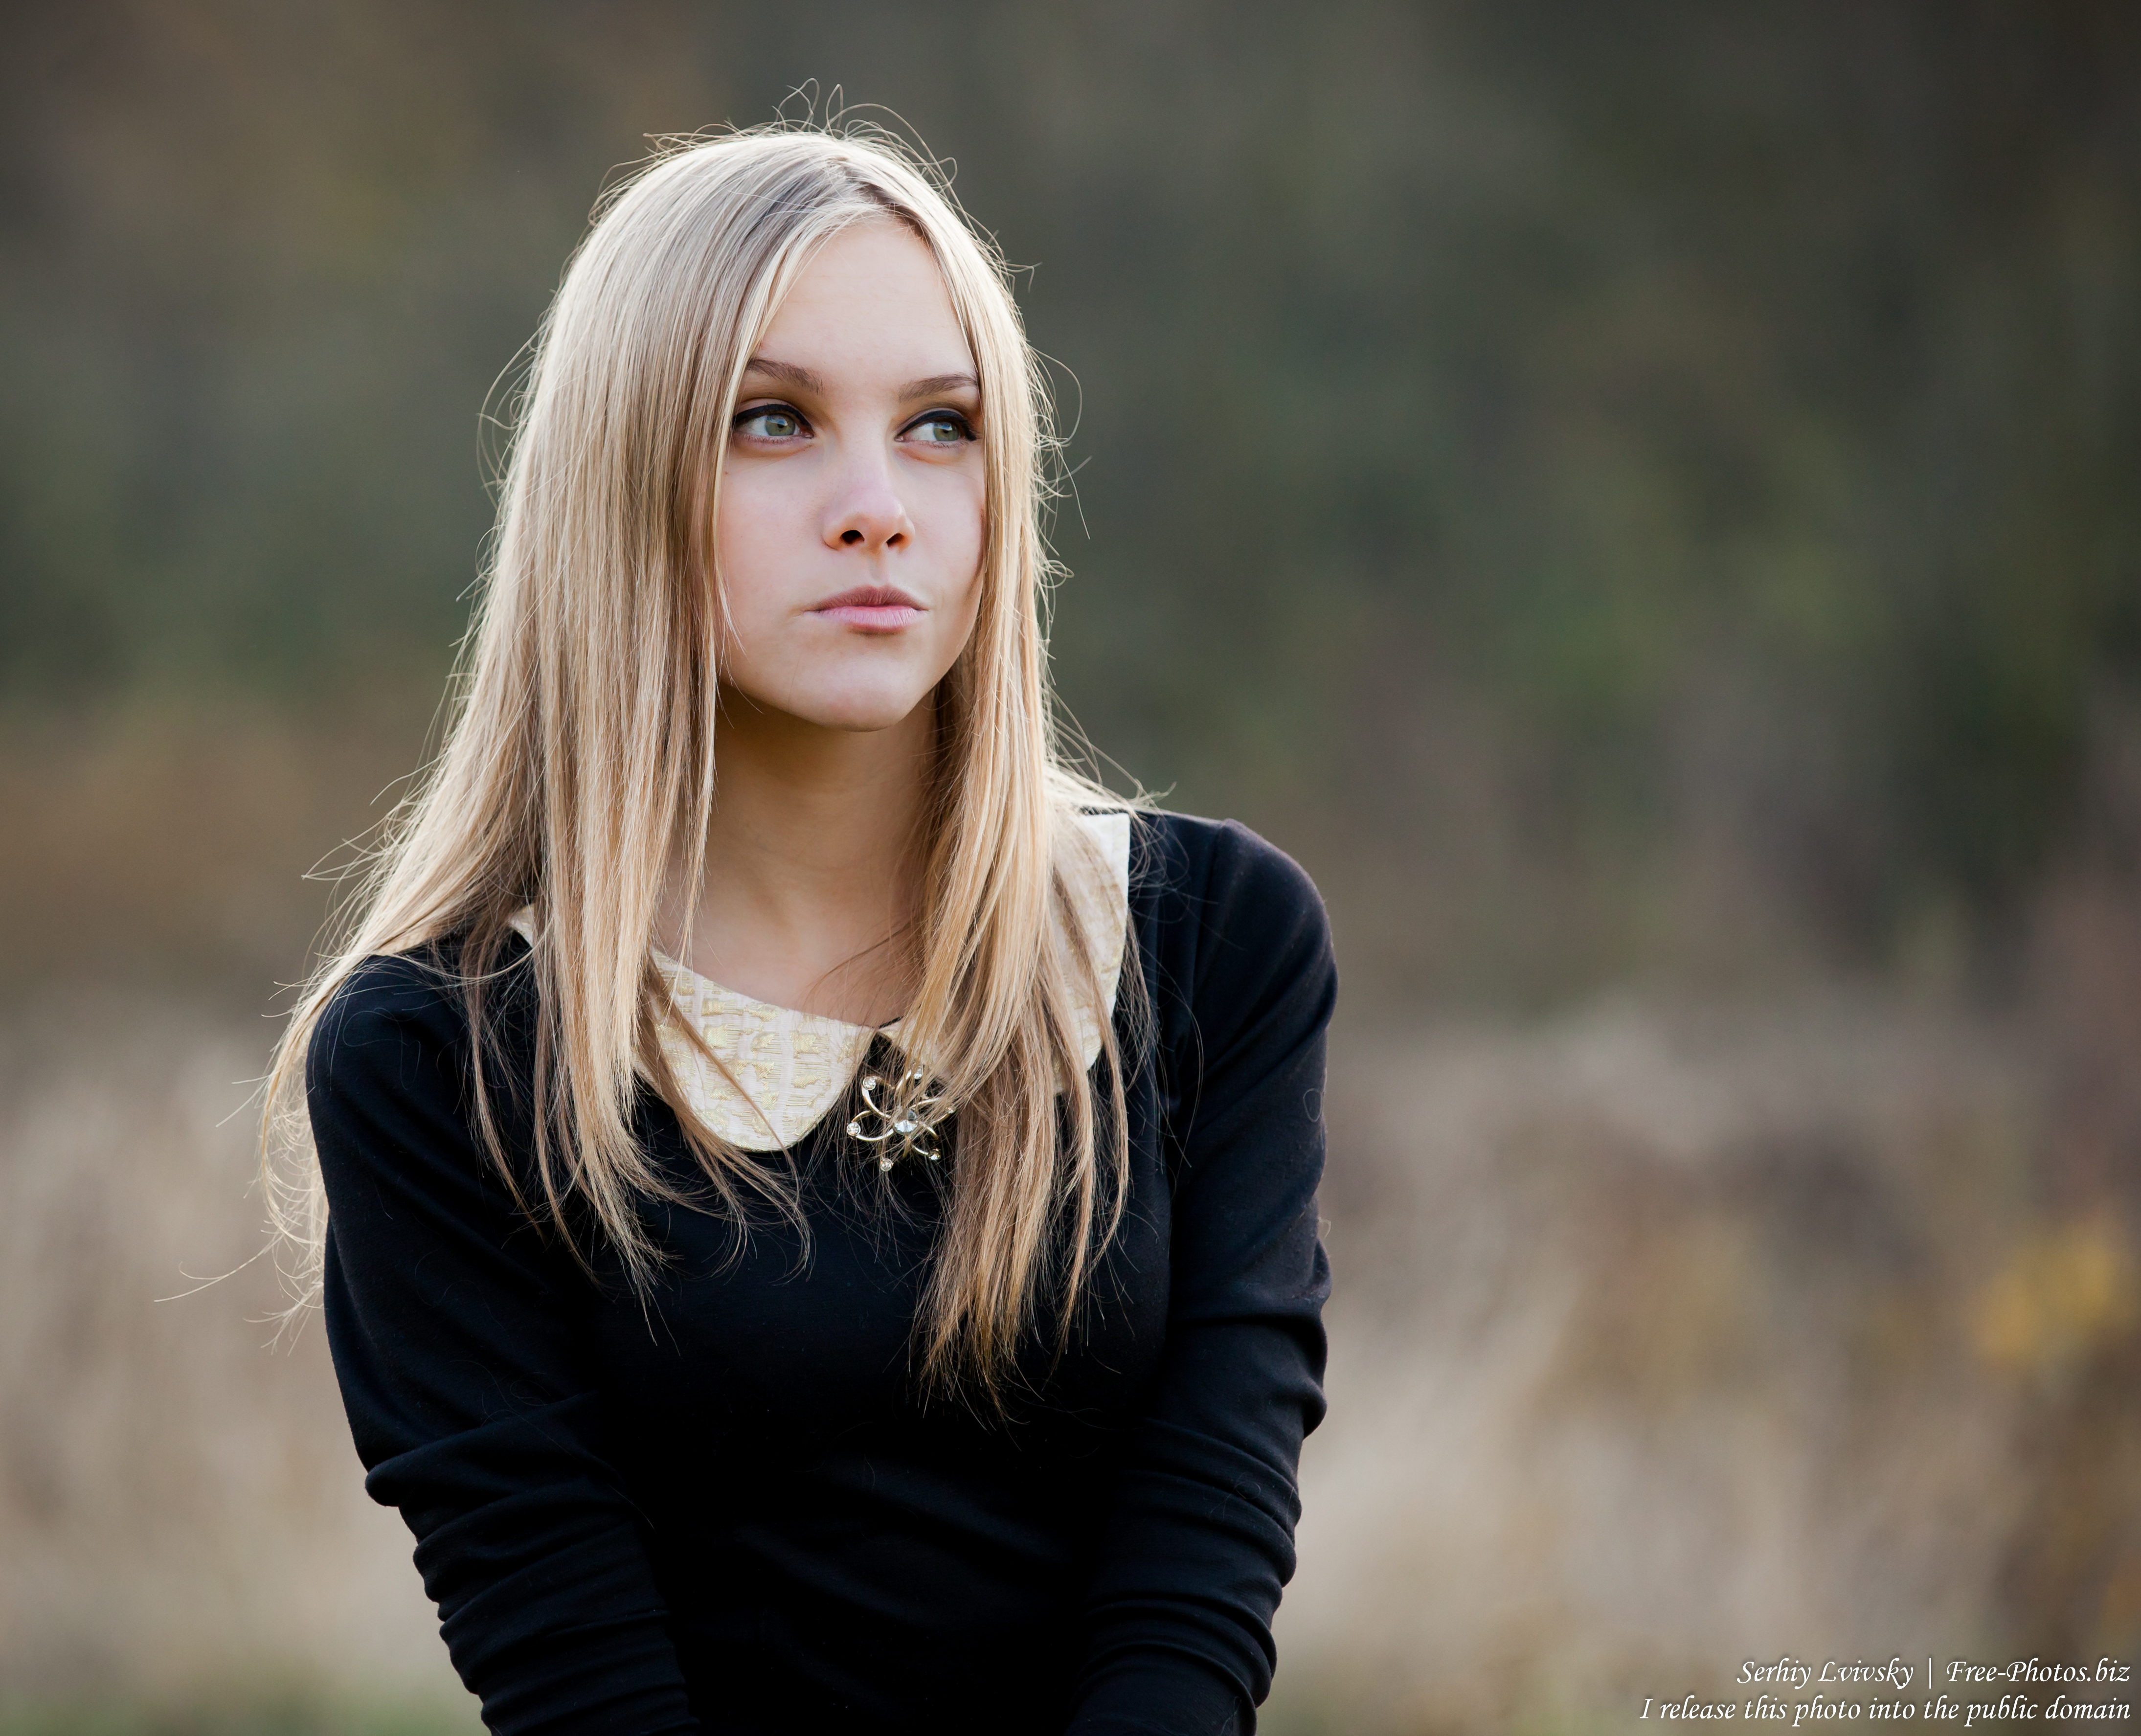 a 15-year-old blond girl photographed in October 2015 by Serhiy Lvivsky, picture 9